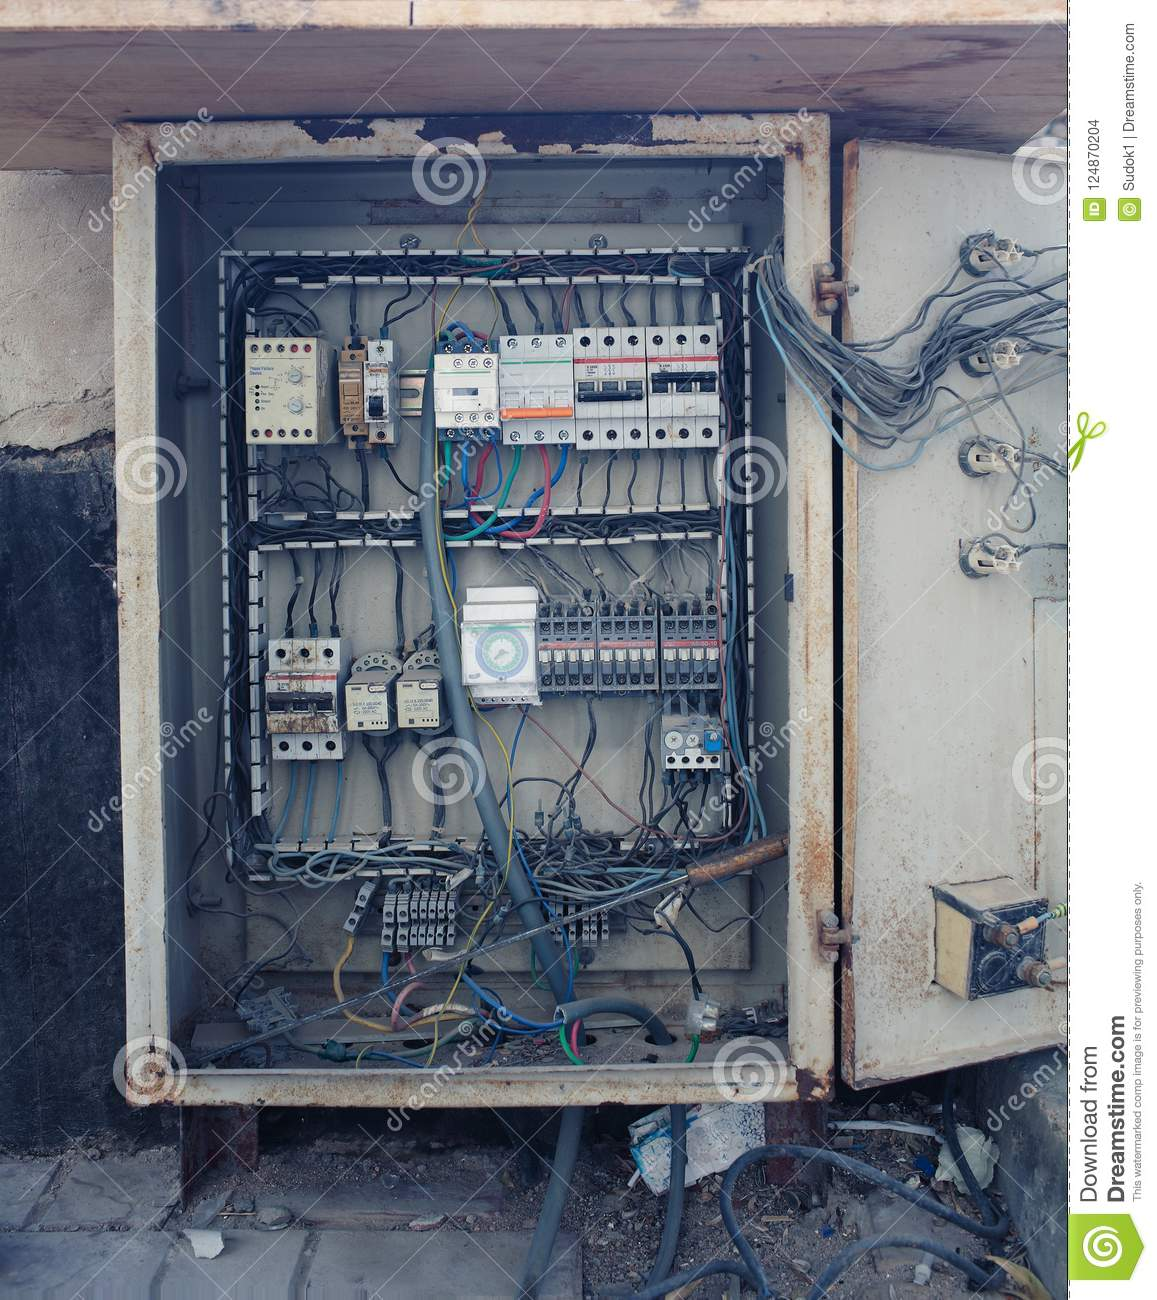 An Old Open Electrical Control Panel Box Stock Photo - Image of high on electrical boxes, residual-current device, electrical room, electrical control panels, electrical conduit, fuse box, electrical meter box, electrical wiring, electrical installation box, electrical equipment, electricity distribution, ground and neutral, electrical box extender, power cable, house electrical box, wiring diagram, three-phase electric power, electrical design box, large electrical box, electrical gang box, electrical service box, ring circuit, electrical control box, electrical utility box, electrical switch, electrical outlet box, electrical box dimensions, electrical transformer box, breaker box, earth leakage circuit breaker, earthing system, national electrical code, electricity meter, circuit breaker, consumer unit, junction box,